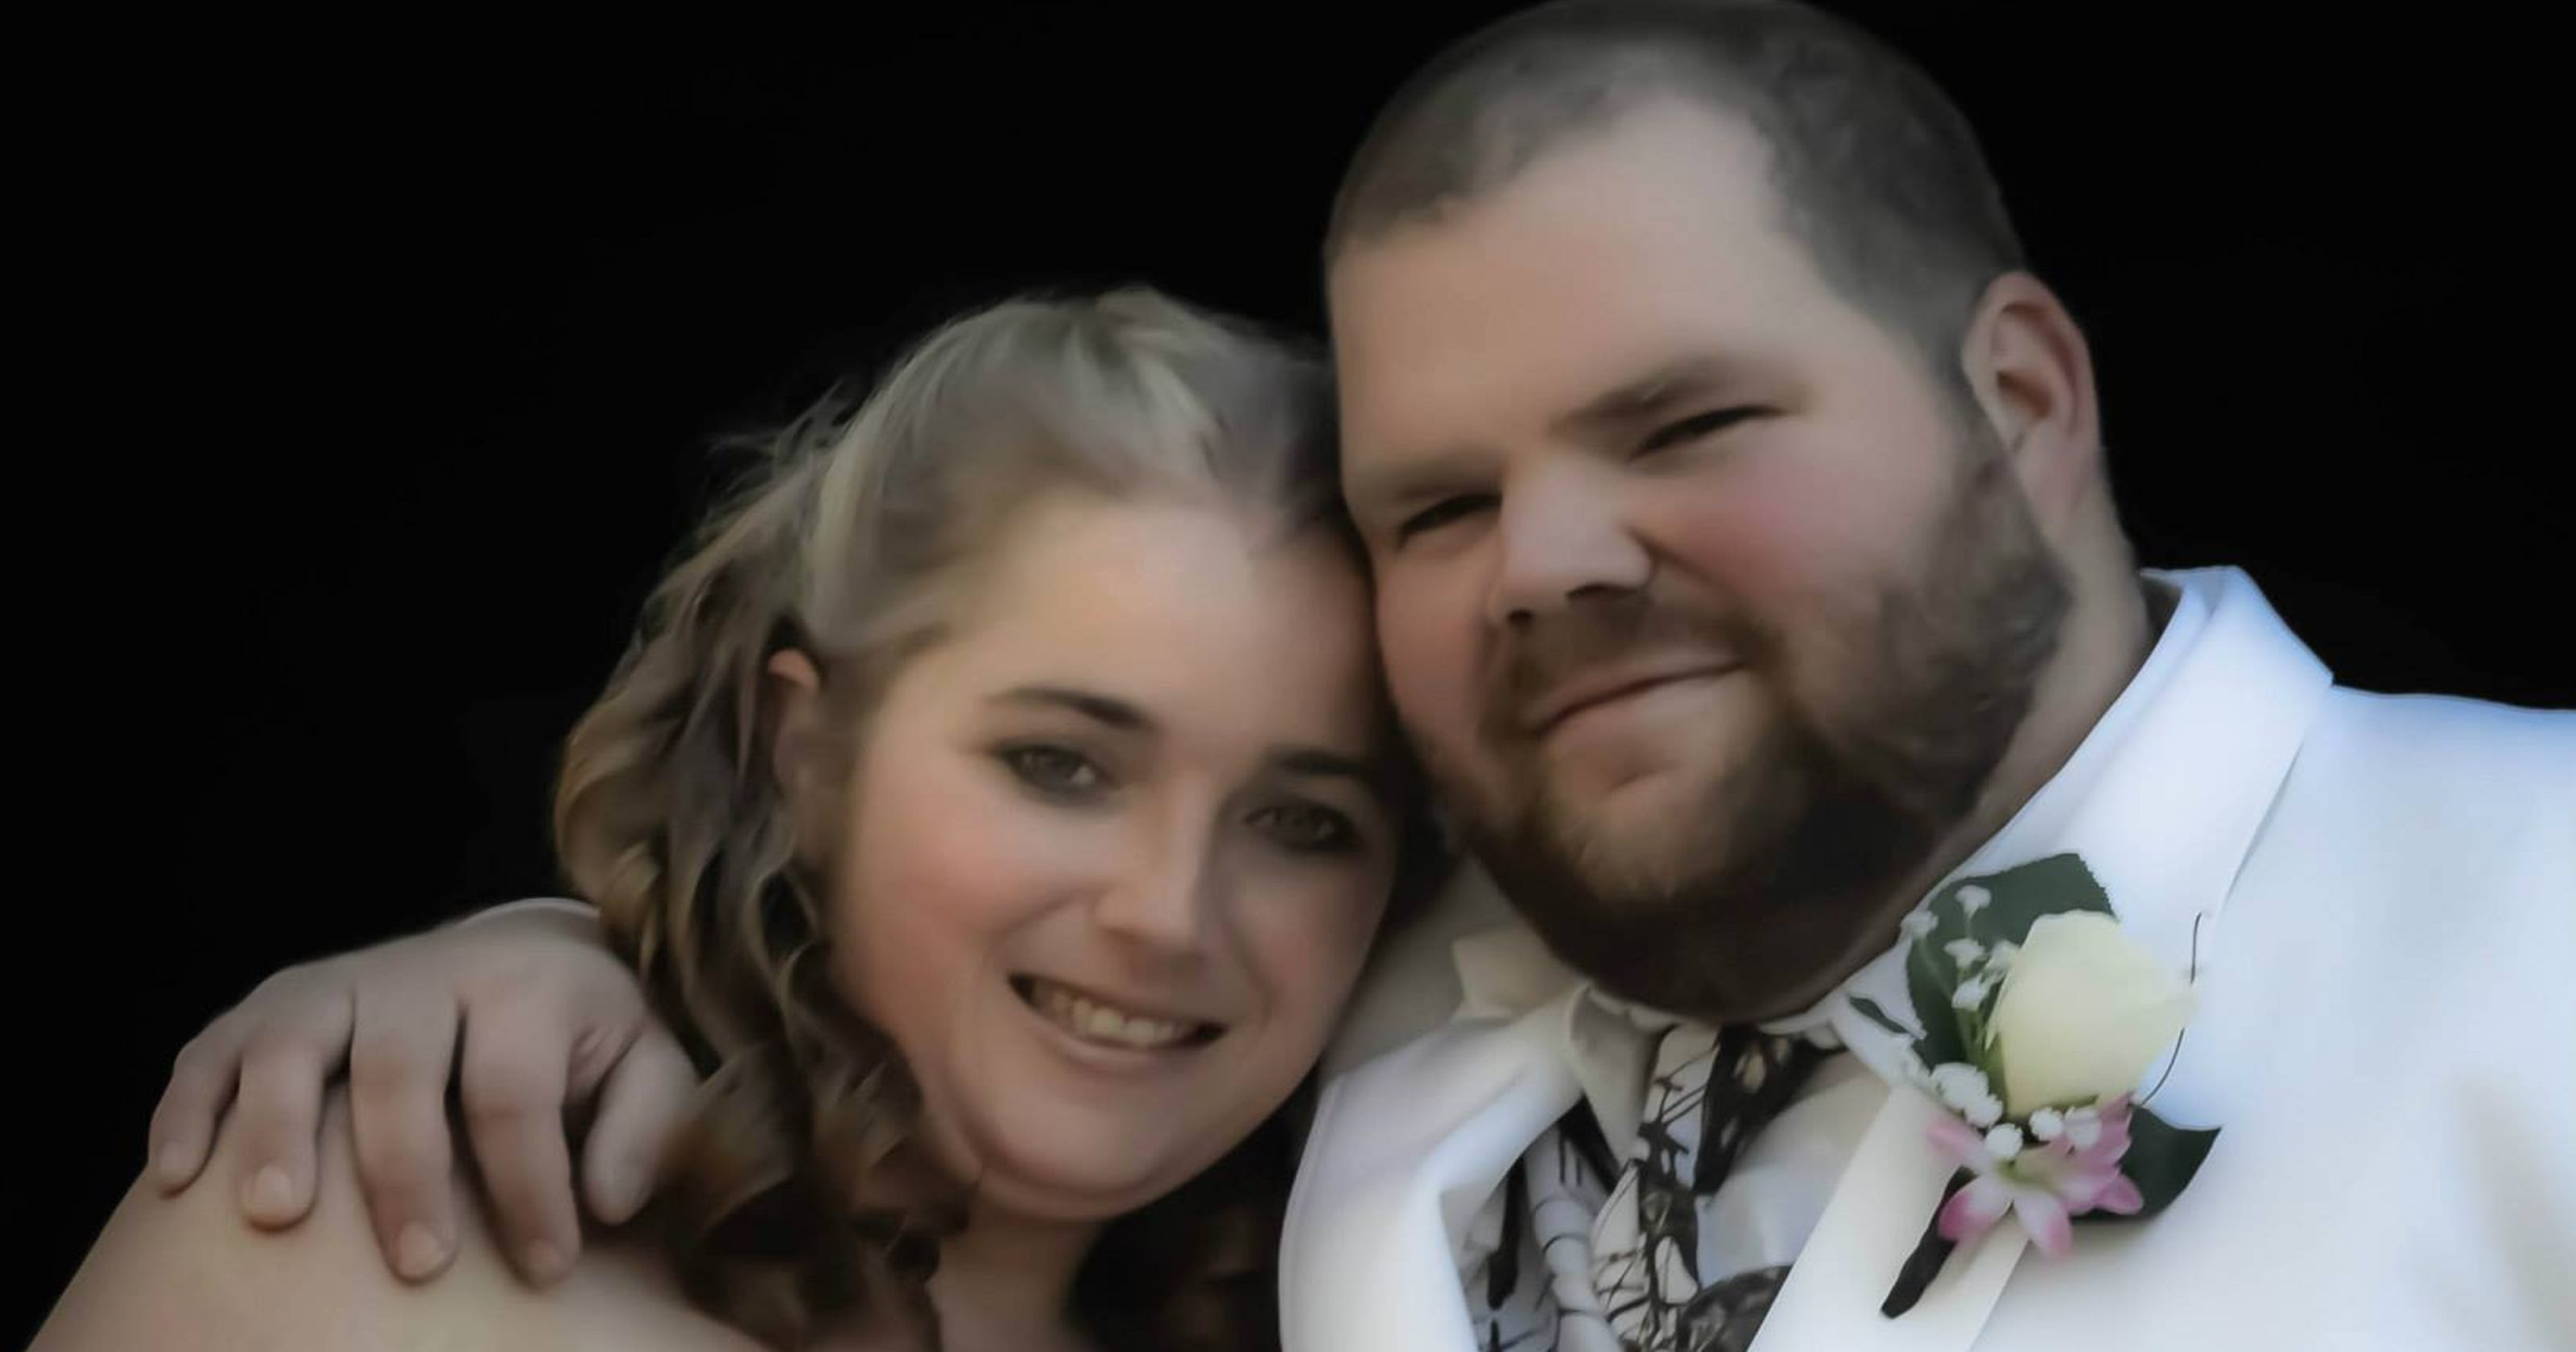 On Your Wedding Day By Unknown: Cause Of Fatal Wedding Day Crash Still Unknown